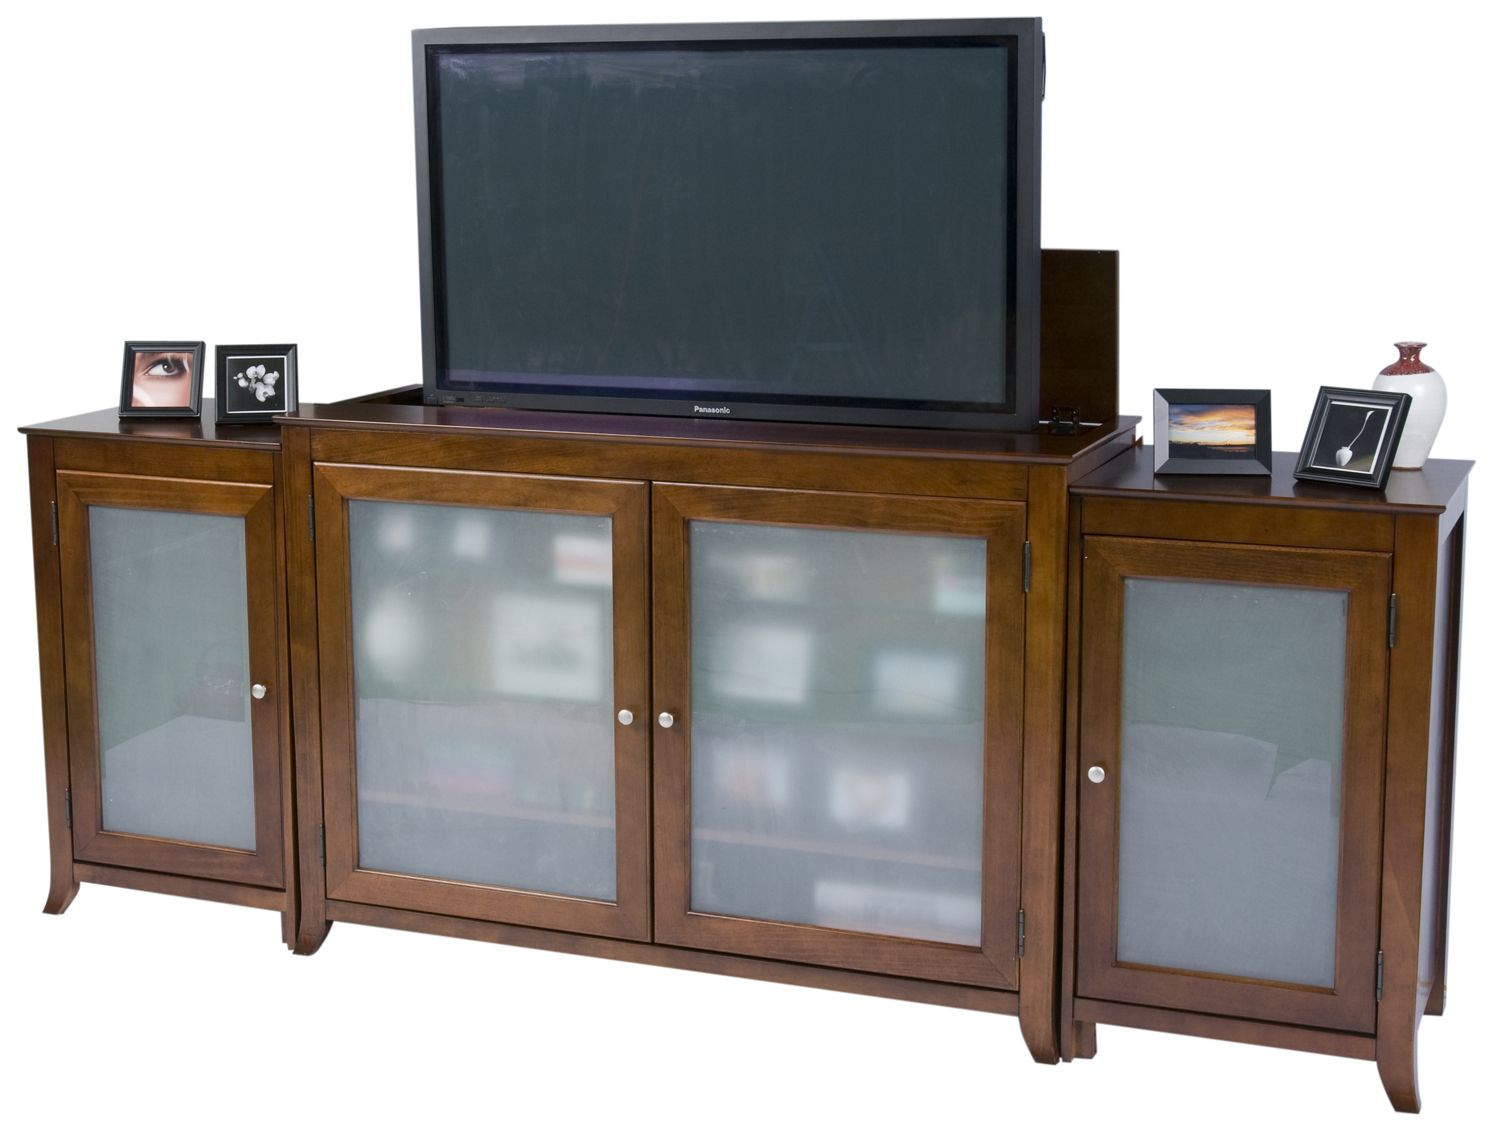 Wonderful TV Lift Cabinets By Touchstone Home Products   Smart Furniture TV .